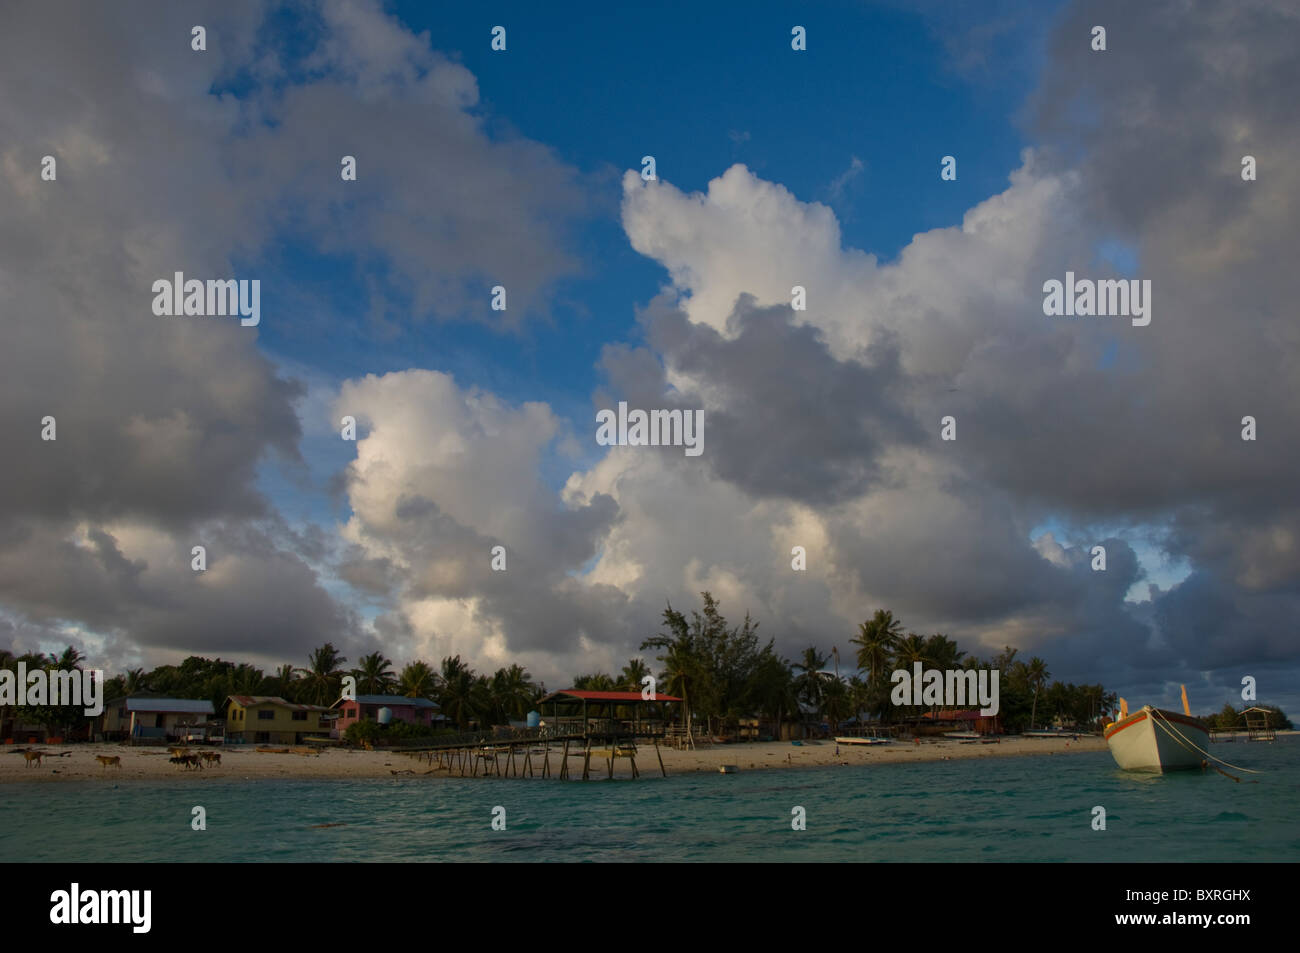 Small village, view from boat, Island of Mantanani, South China Sea, East Malaysia. - Stock Image